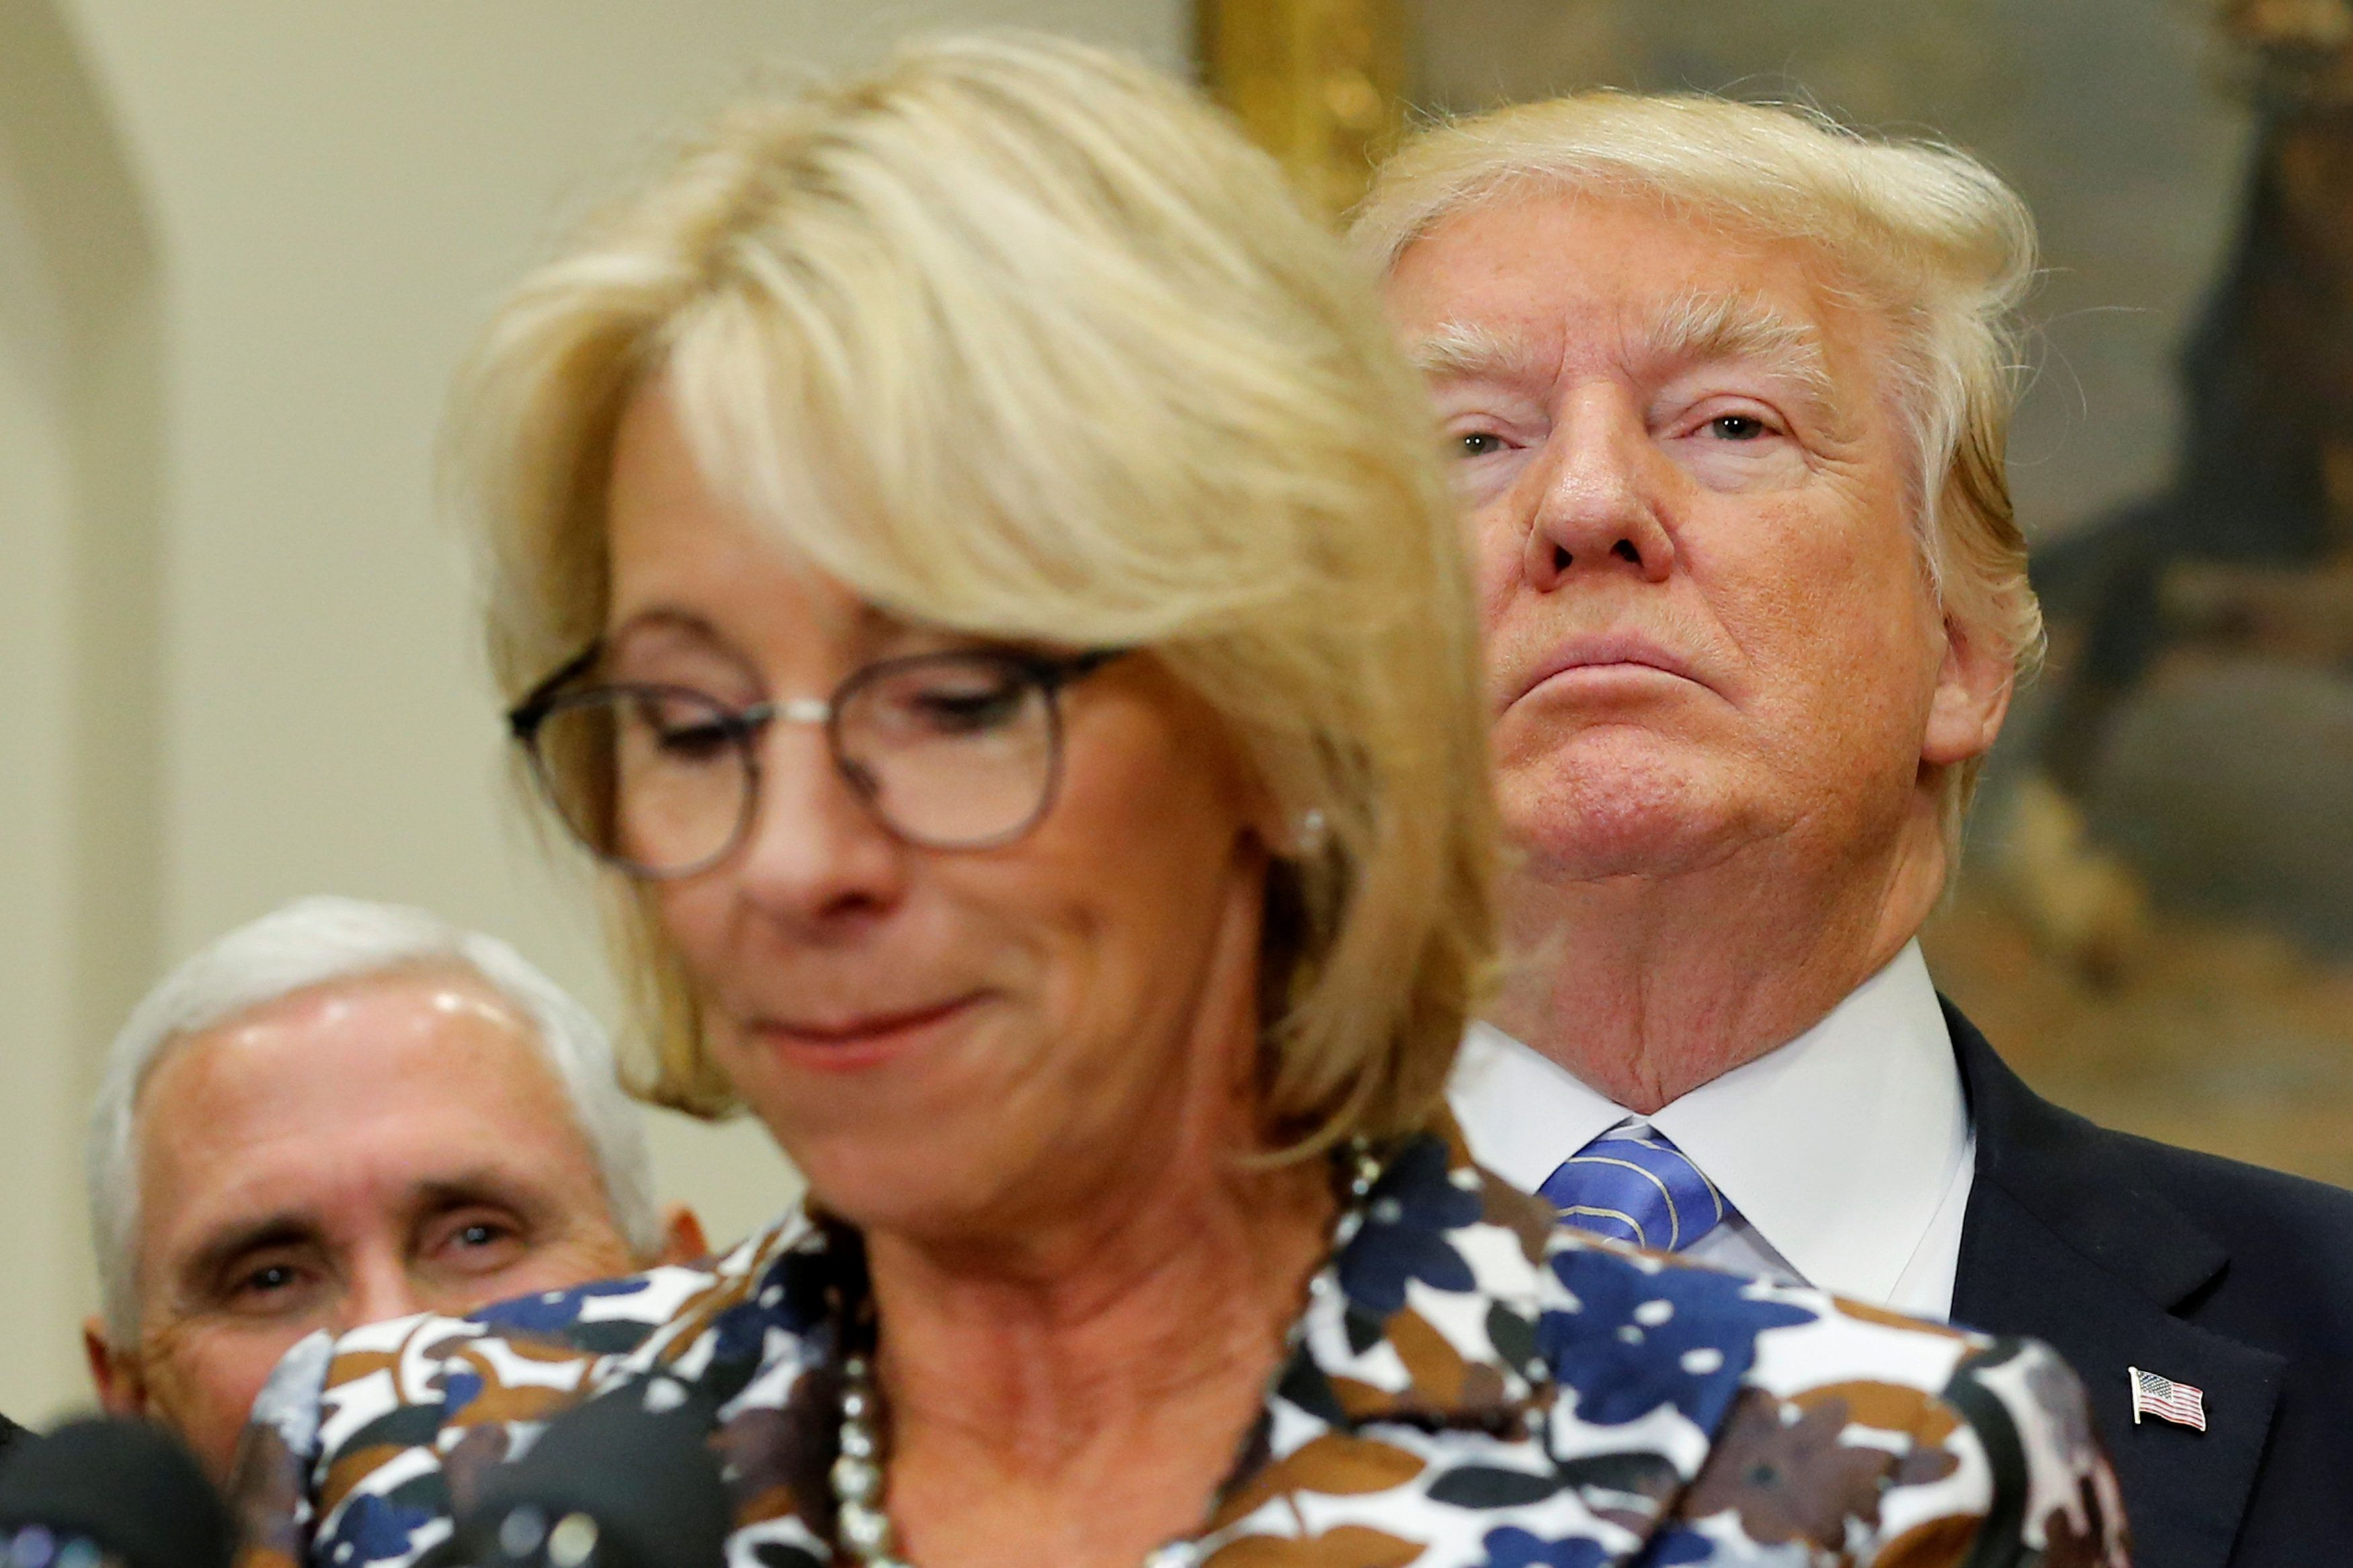 U.S. President Donald Trump (R, background) and Vice President Mike Pence (L) wait to interrupt Education Secretary Betsy DeVos as she speaks to students at a school choice event at the White House in Washington, U.S. May 3, 2017.  REUTERS/Jonathan Ernst